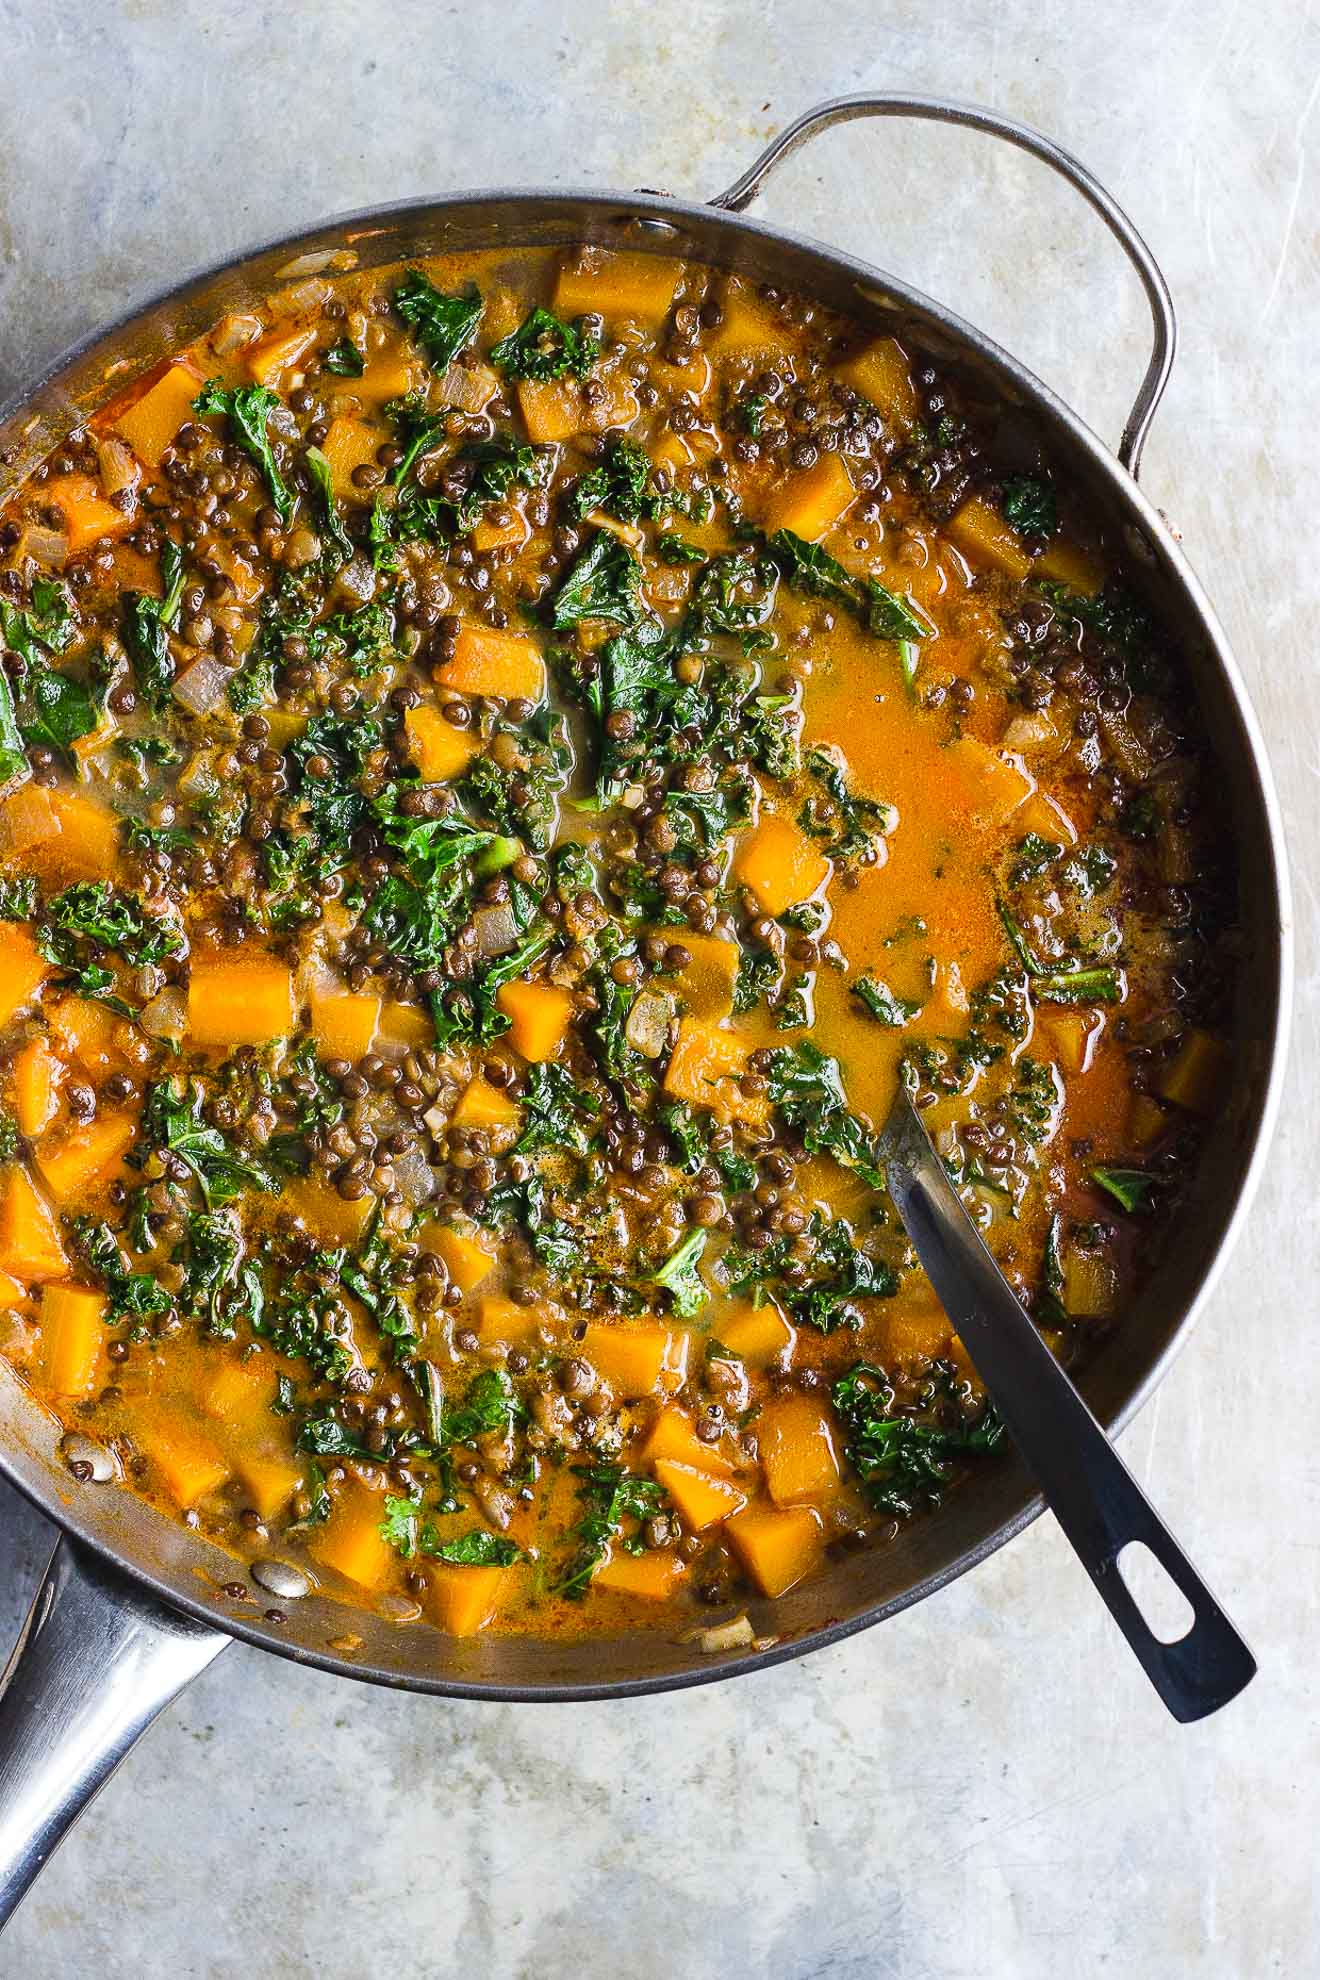 Red Curry Lentil Stew with Butternut Squash + Kale | Red curry lentil stew with butternut squash, kale and creamy coconut milk. It's naturally gluten-free and vegan. It's a hearty fall lentil stew. #butternutsquashrecipes #fallstew #lentilstew